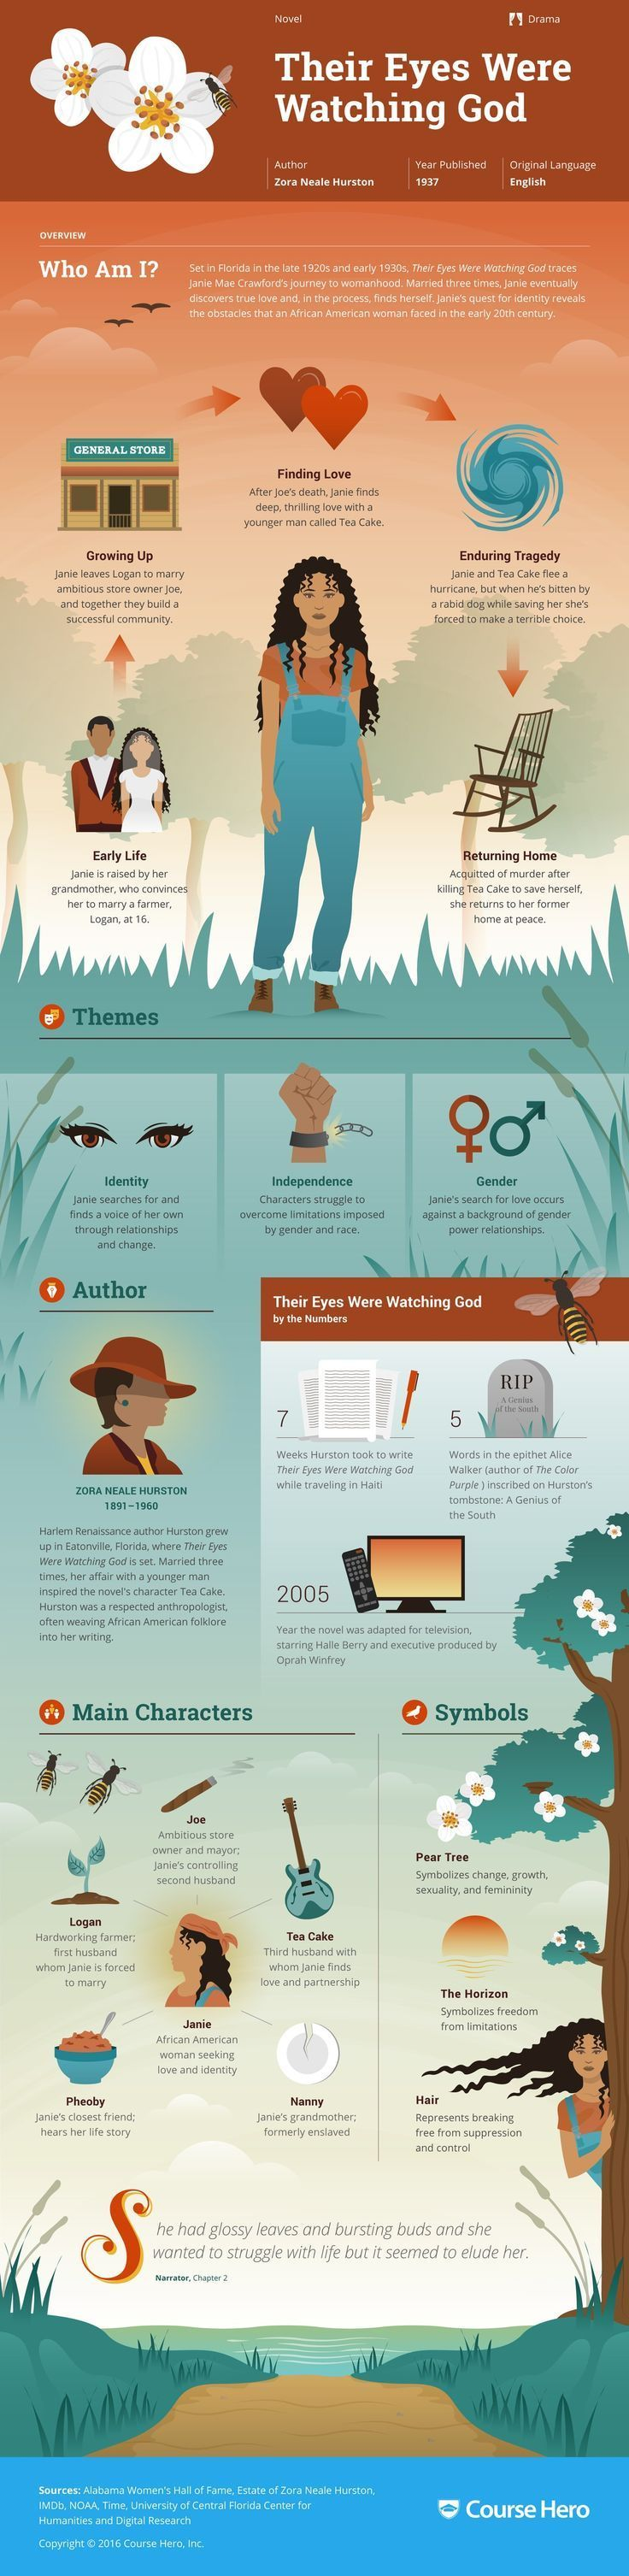 Their Eyes Were Watching God Infographic   Course Hero